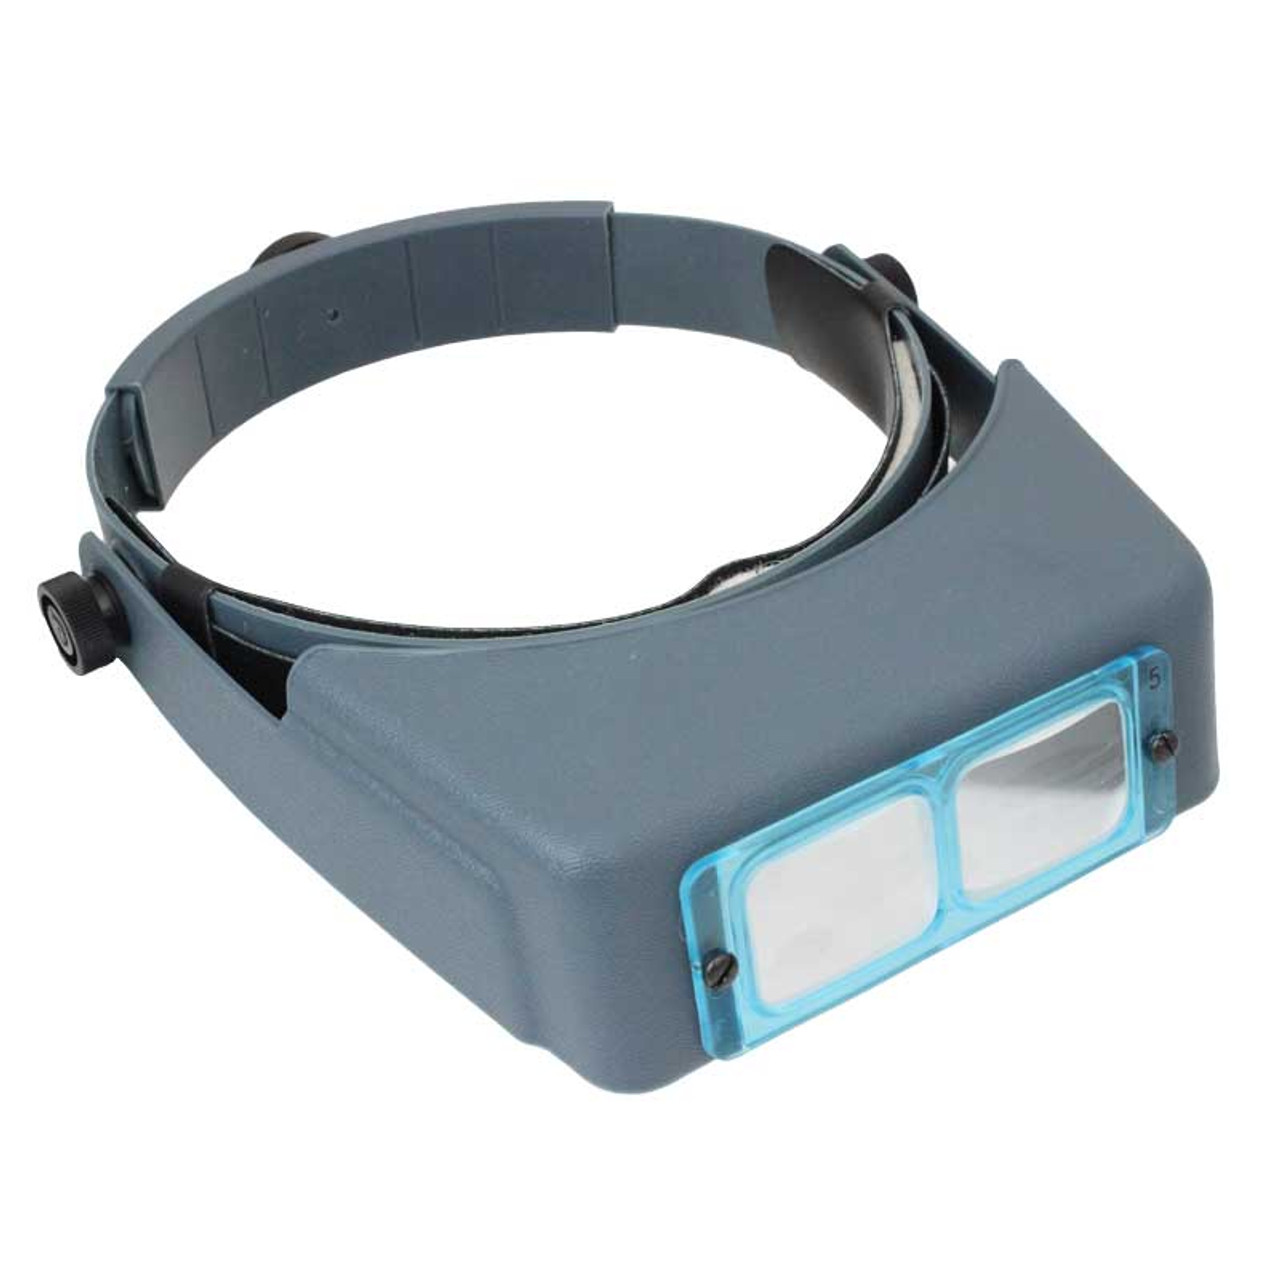 72c3853481b3 Optivisor Magnifier Hands Free Headband for Jewelers and Watchmakers - Watch  Battery Tools